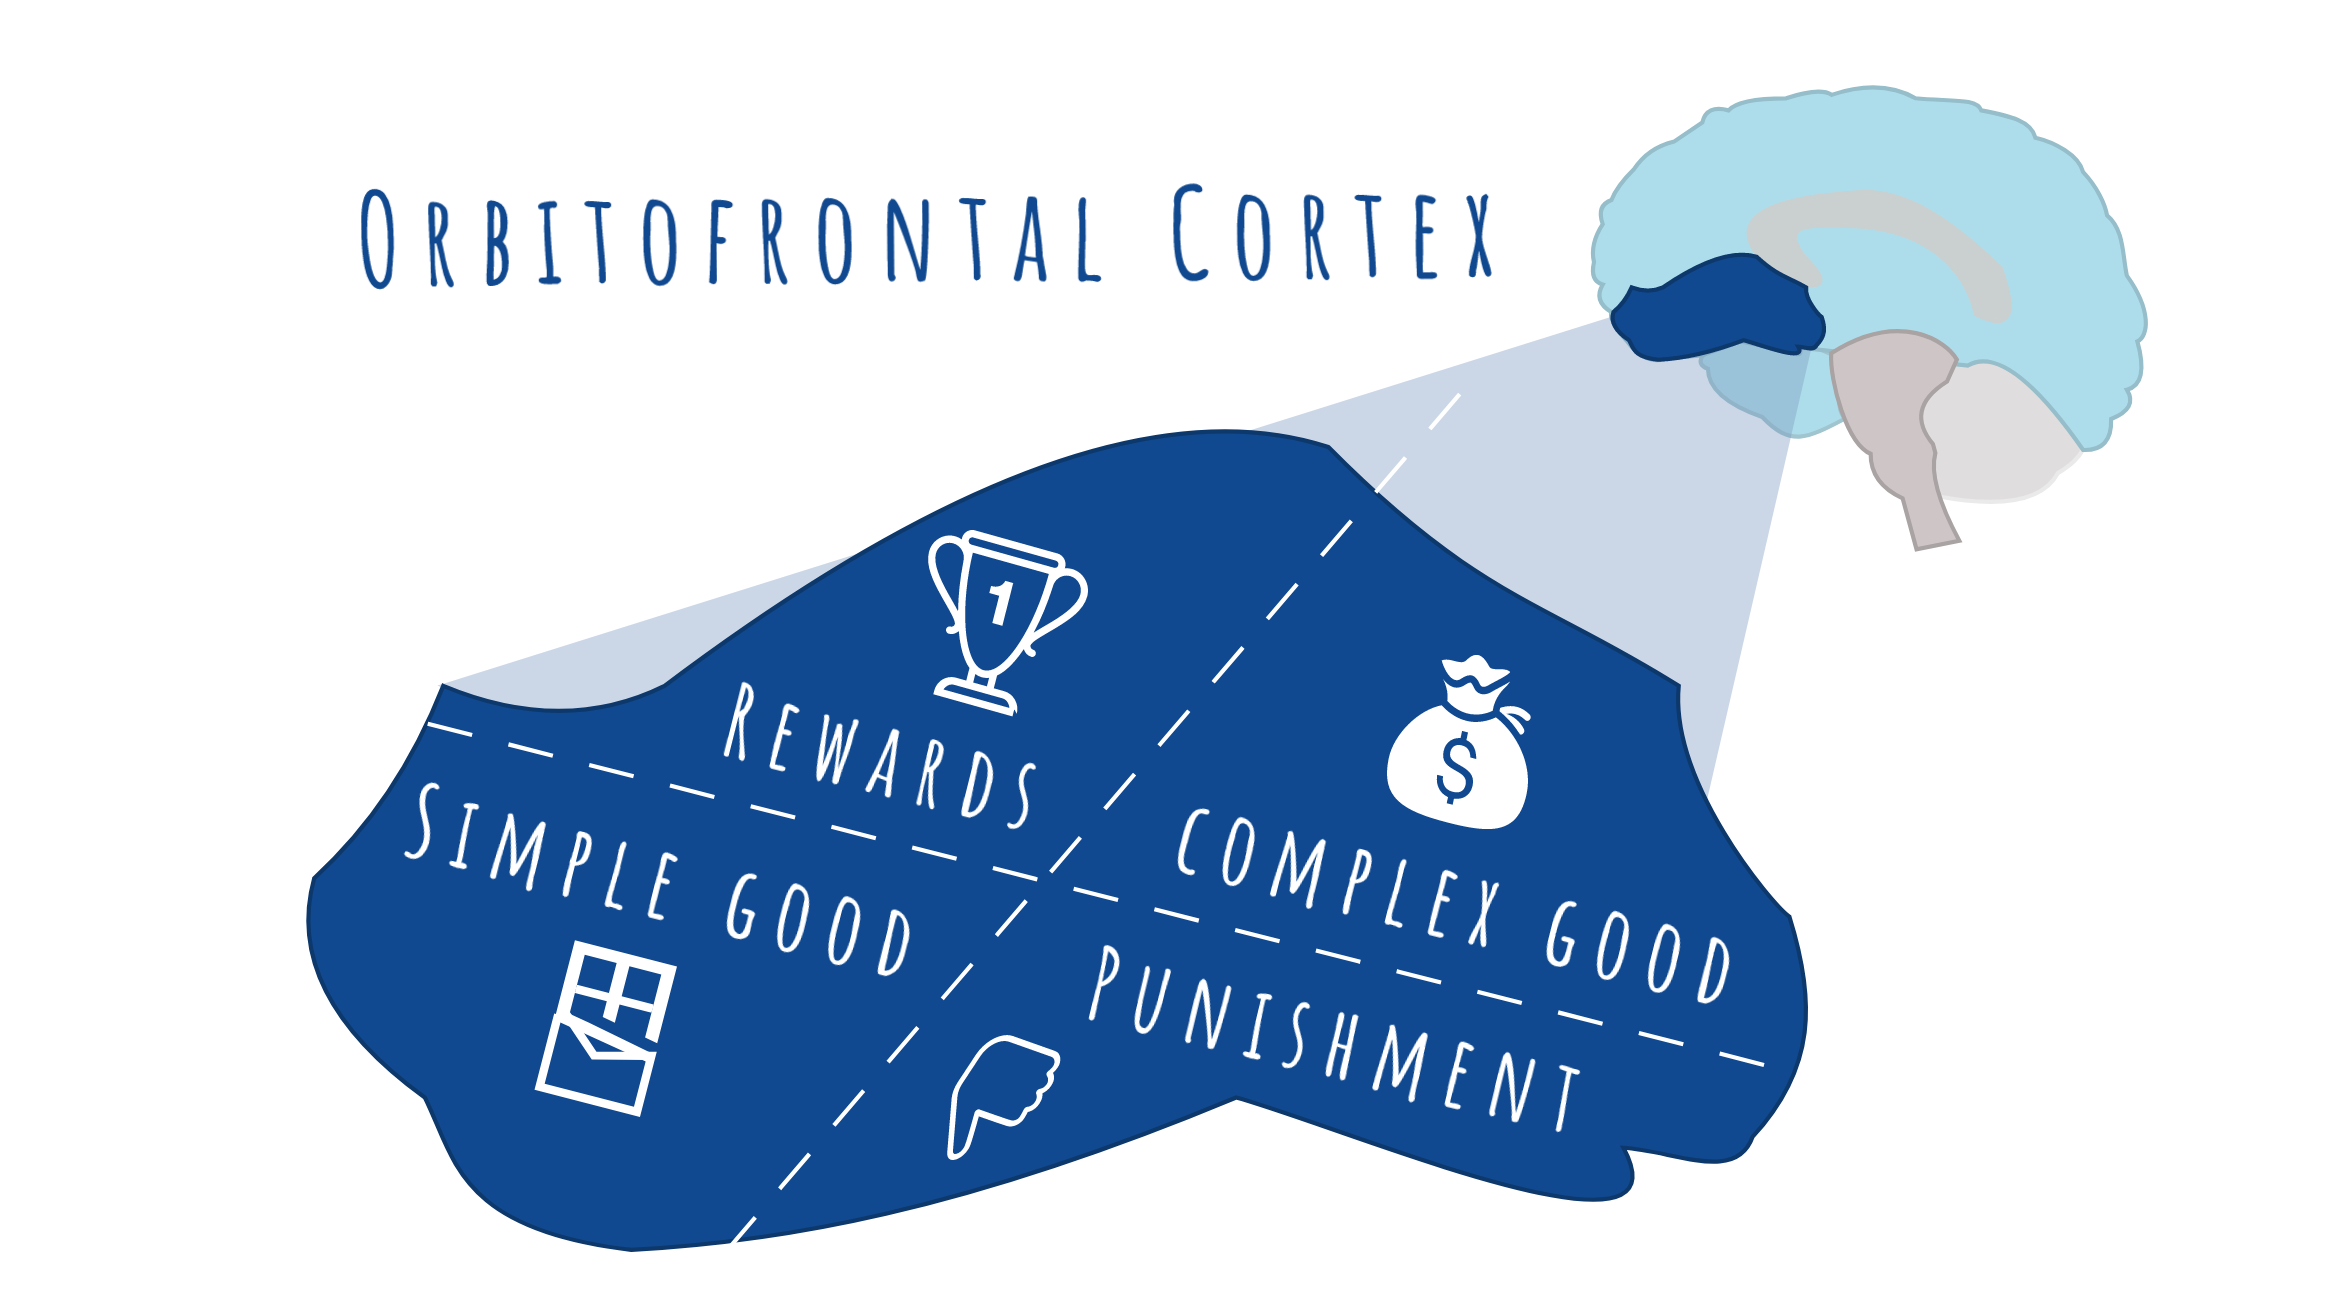 The different areas of the OFC for reward, punishment, simple good and complex good